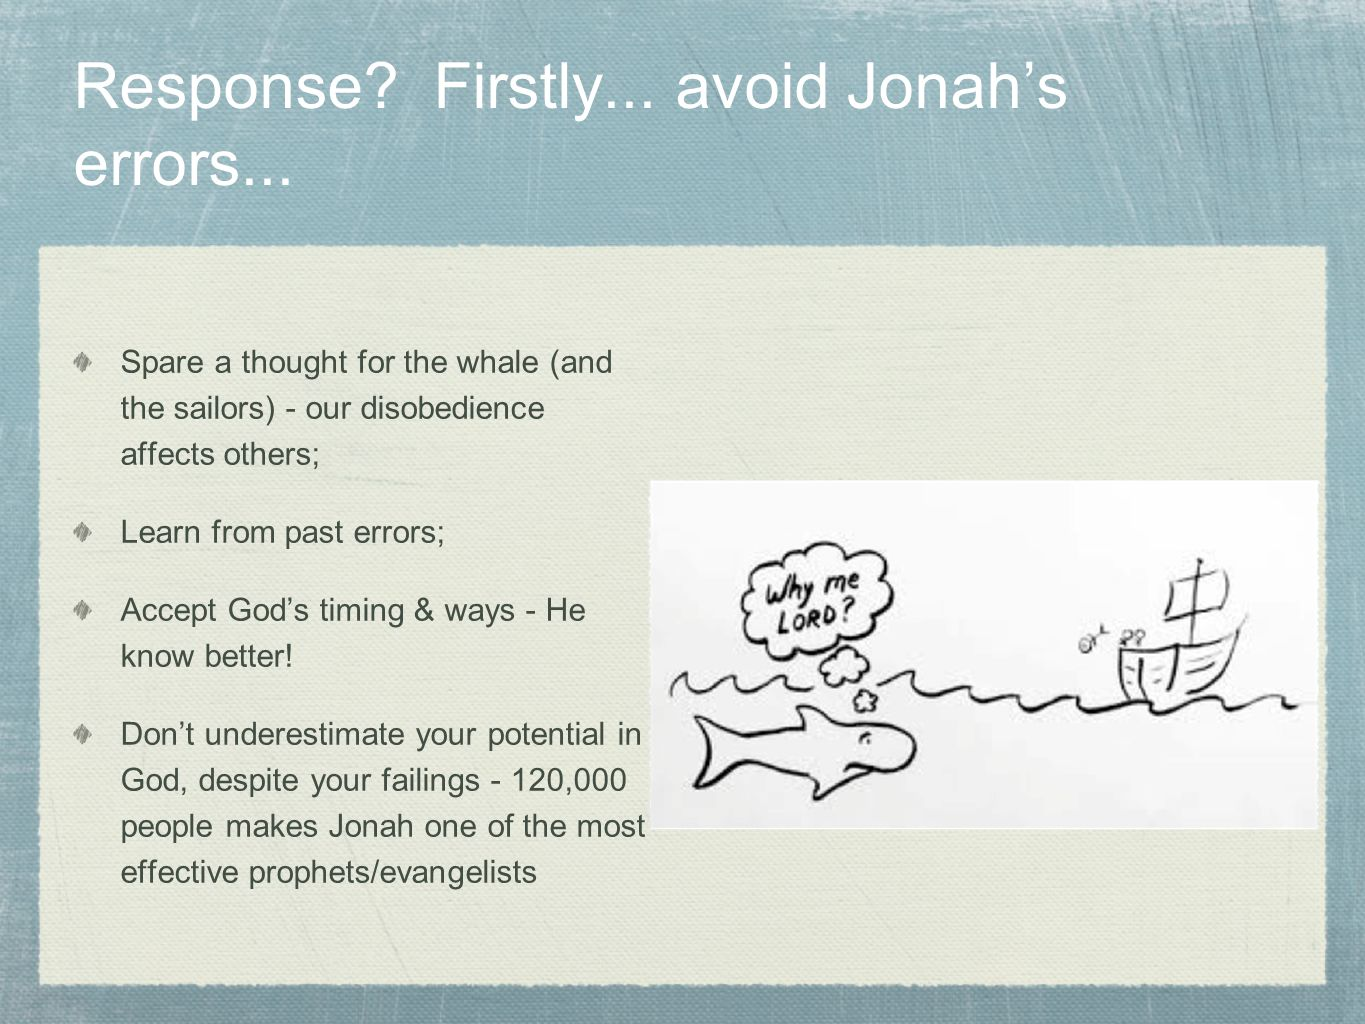 Response. Firstly... avoid Jonah's errors...